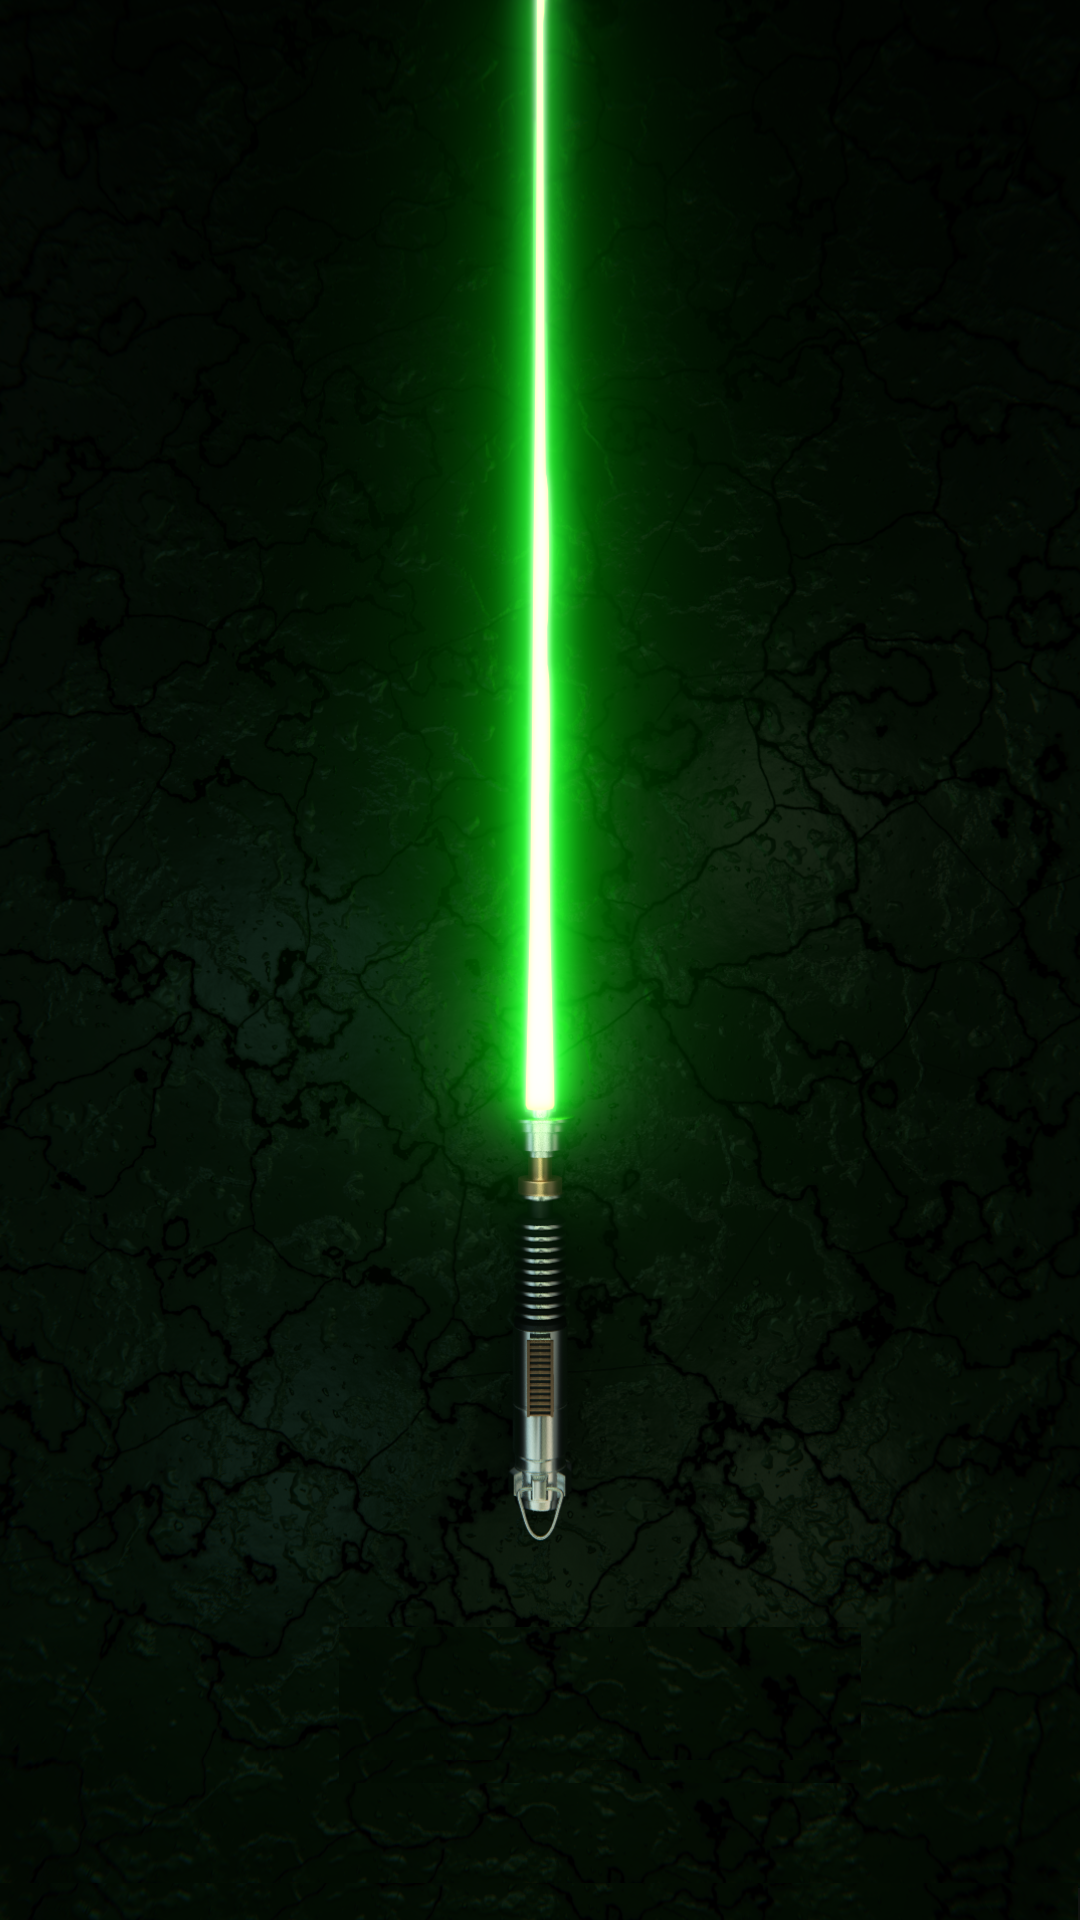 Star Wars Lightsaber Tap To See More Exciting Star Wars